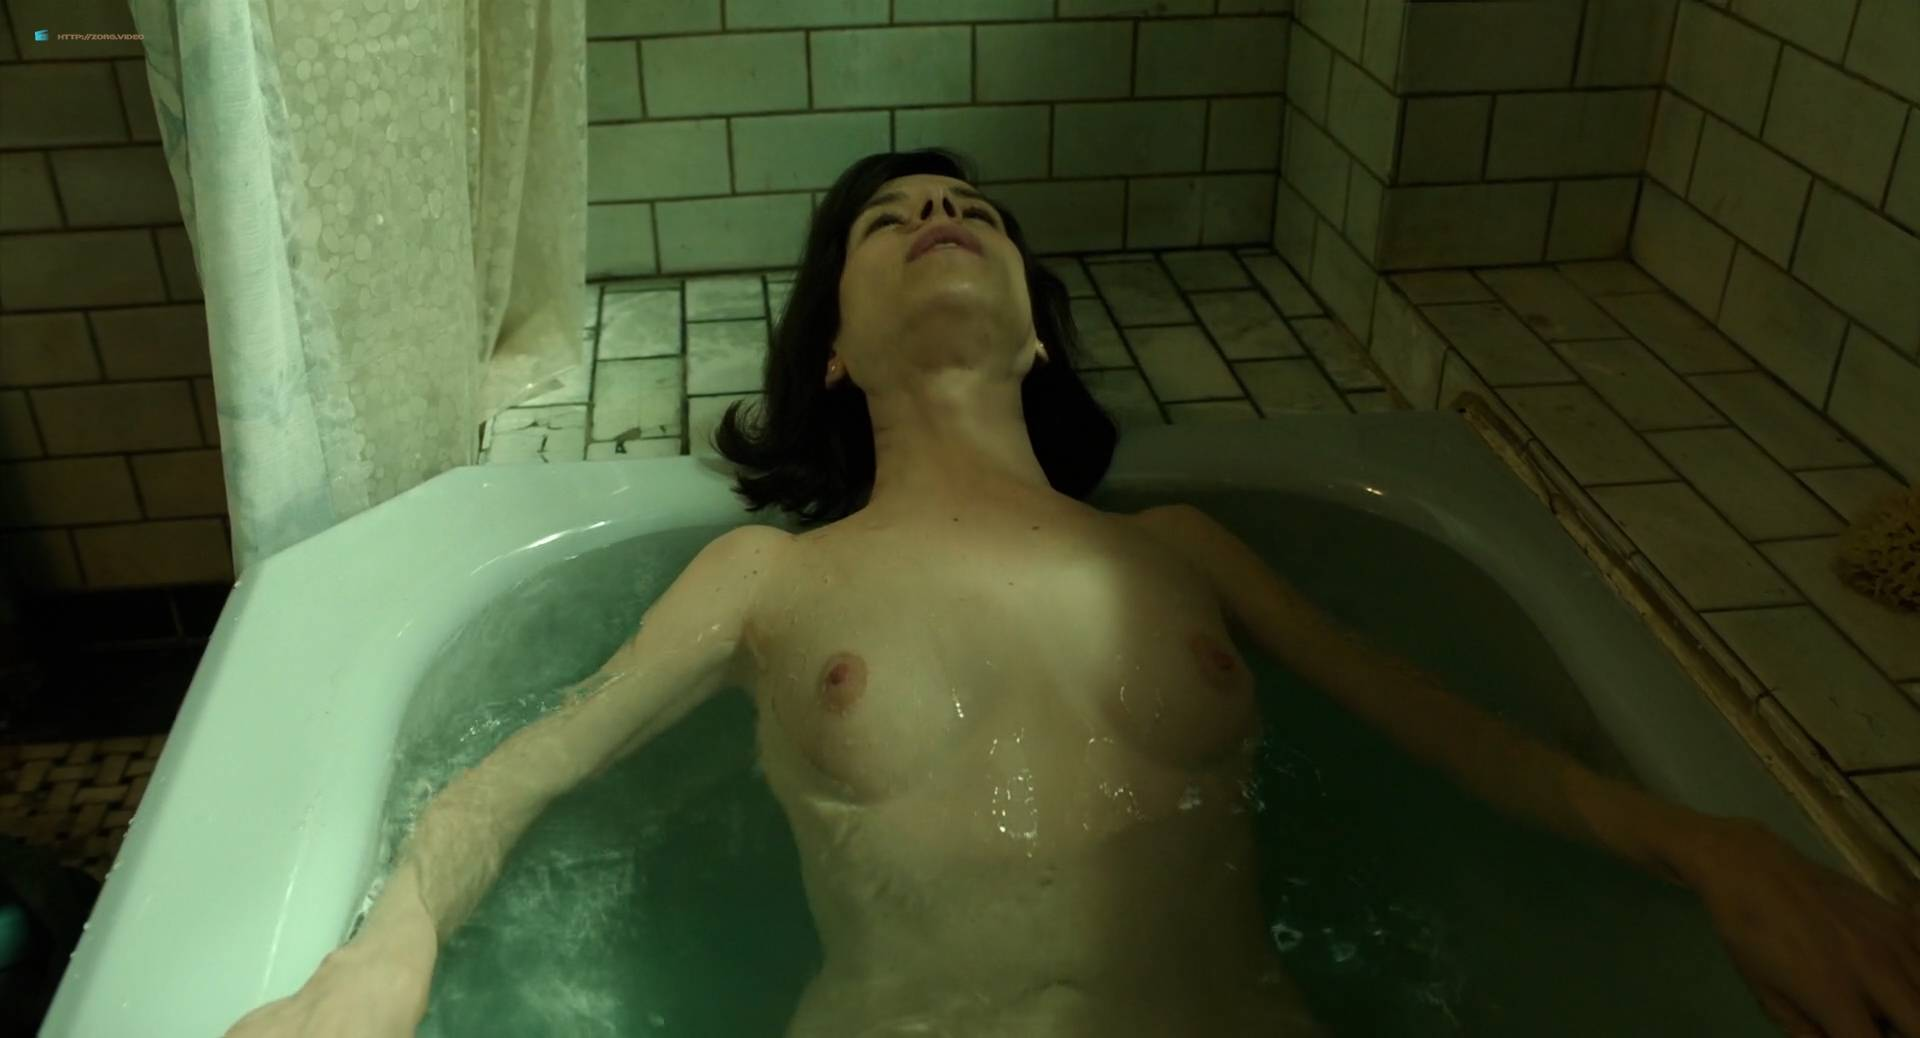 Sally-Hawkins-nude-bush-butt-Lauren-Lee-Smith-nude-boob-and-sex-The-Shape-of-Water-2017-HD-1080p-006.jpg